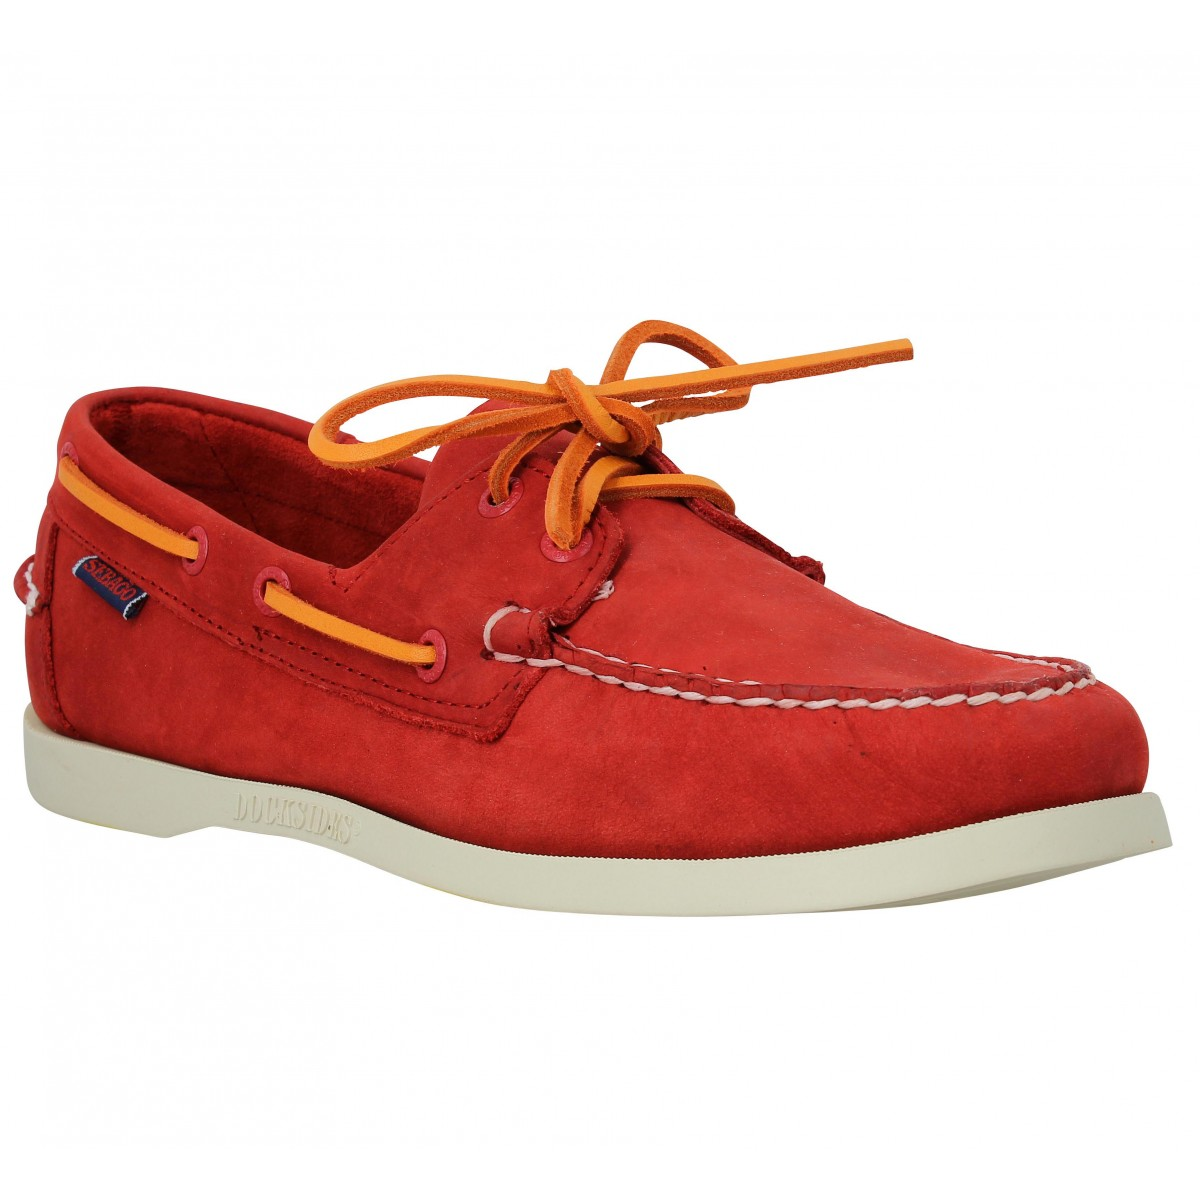 Chaussures bateaux SEBAGO Docksides velours Red